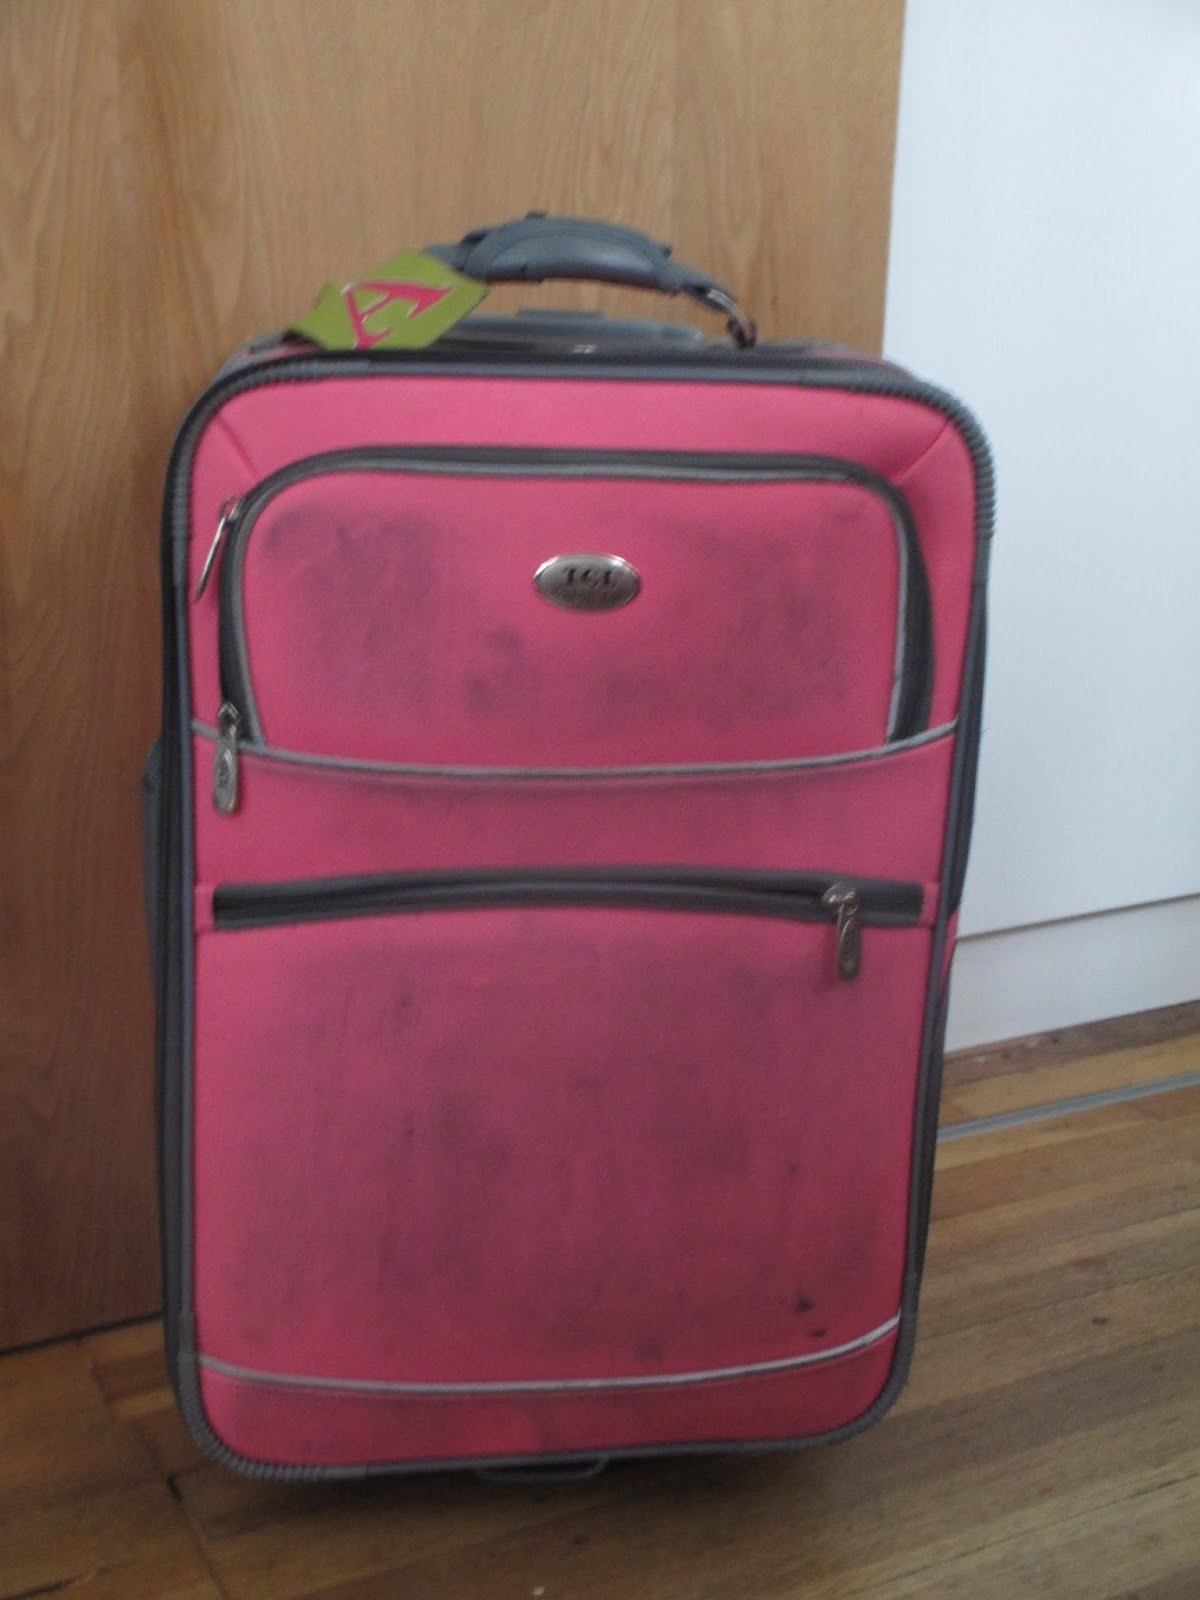 Painted luggage suitcase DIY Craft